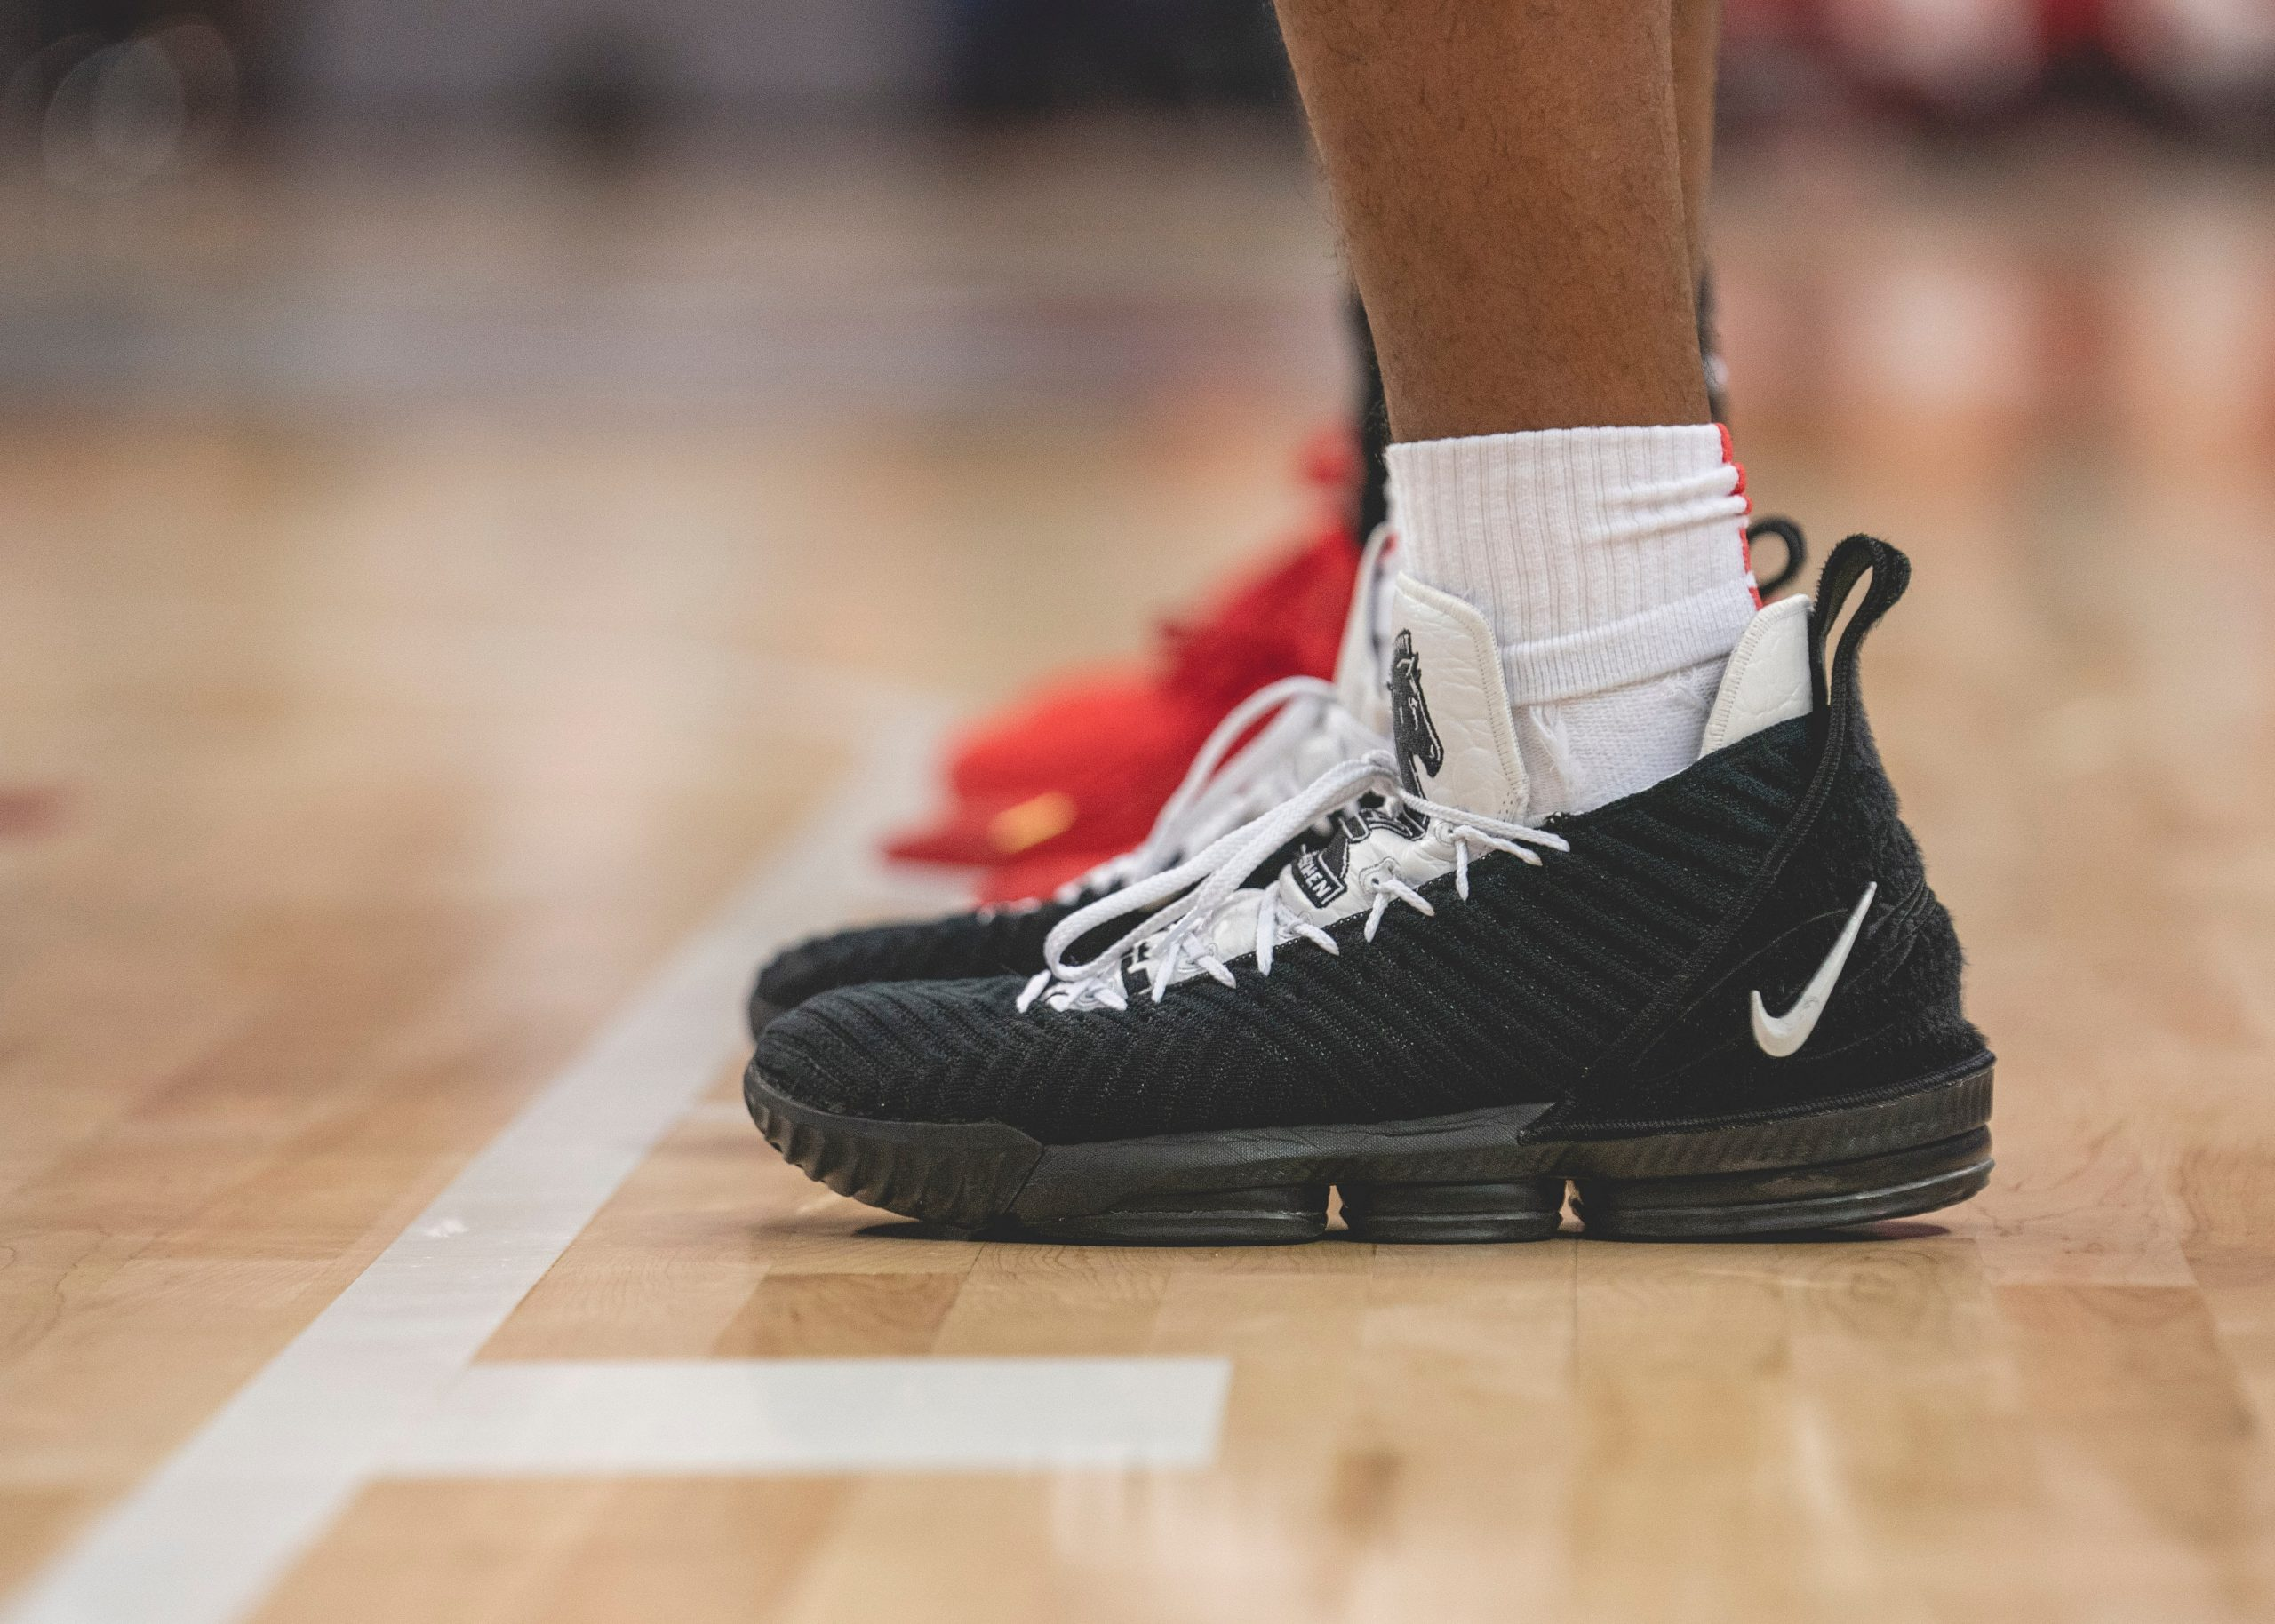 The Lightest Basketball Shoes Design Ideas